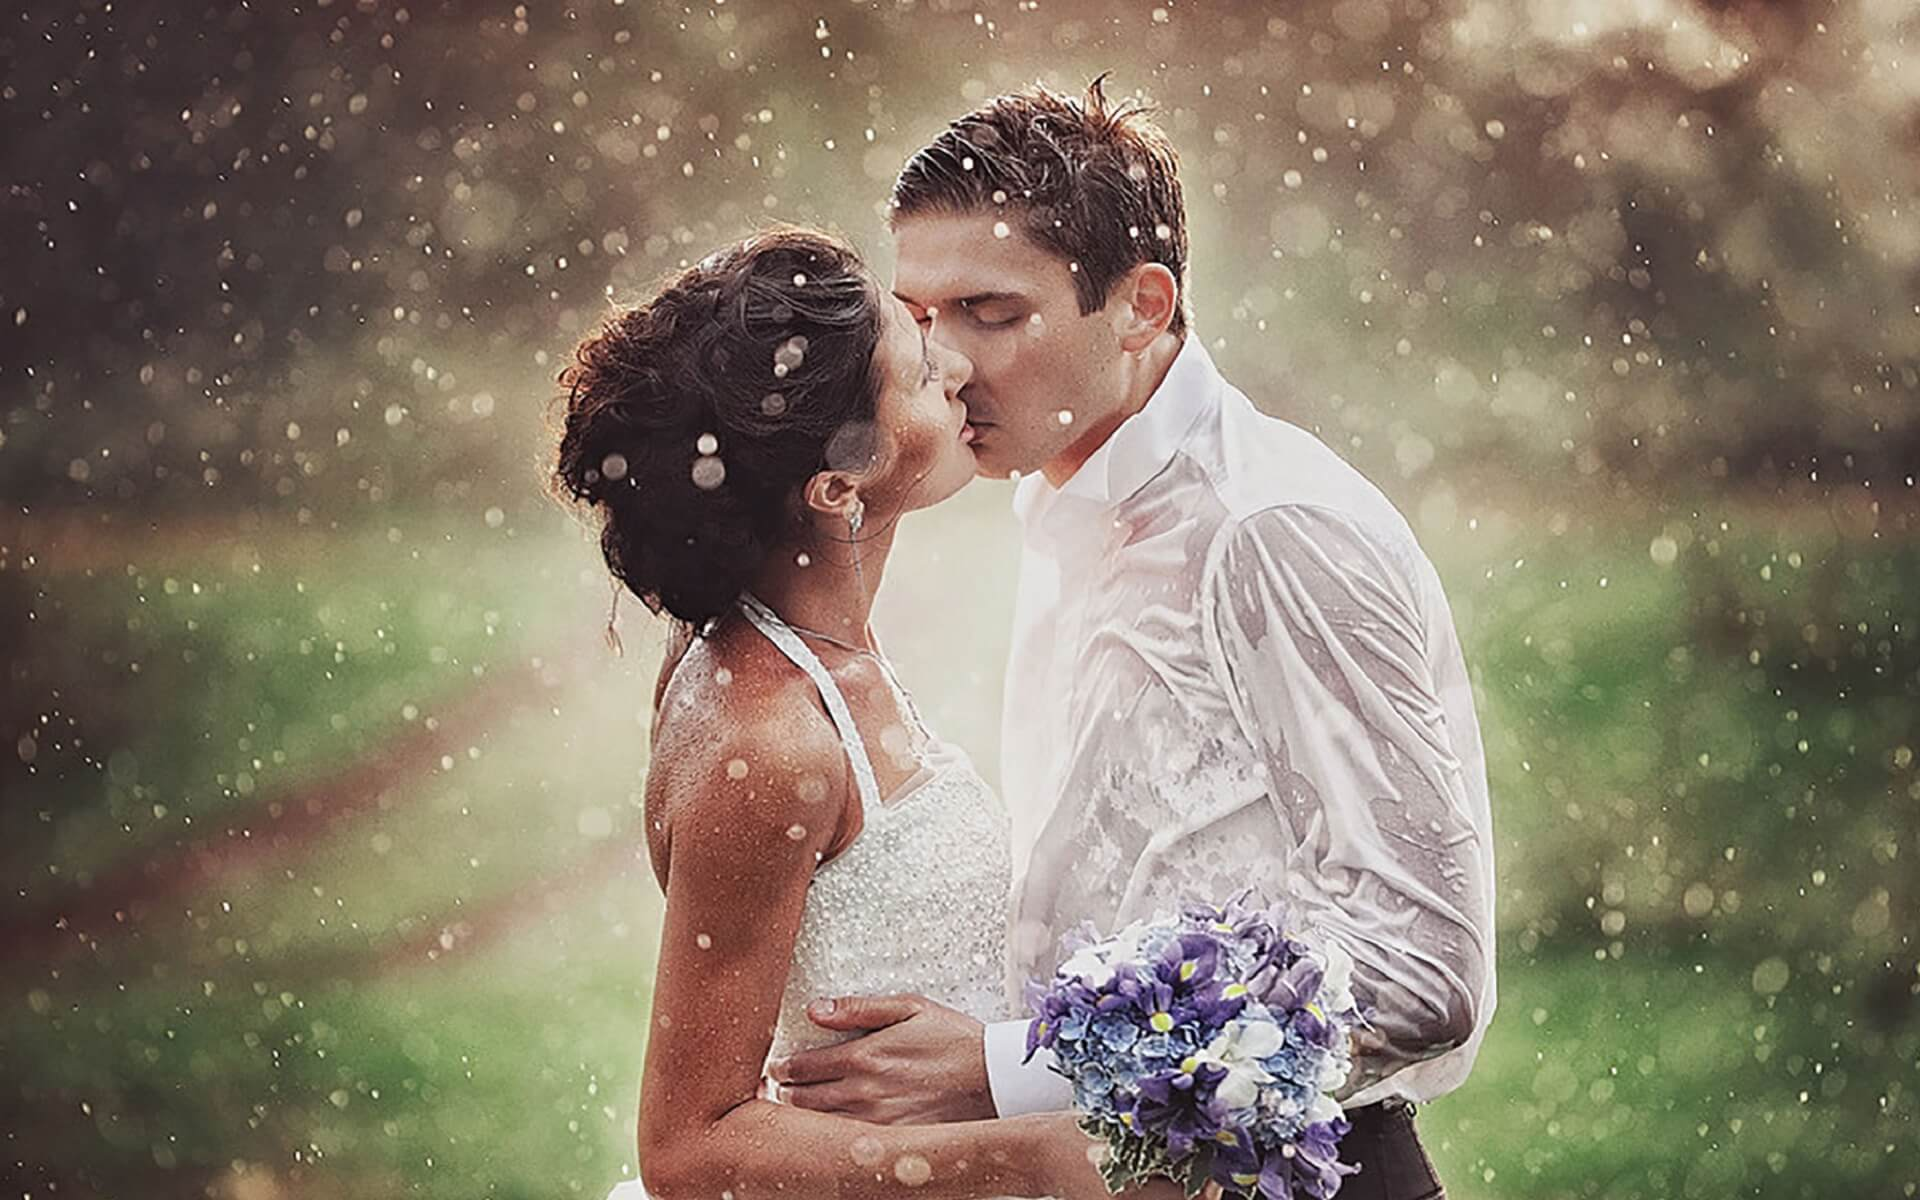 Cute HD Love and Romance Pictures Of Couples In Rain | EntertainmentMesh